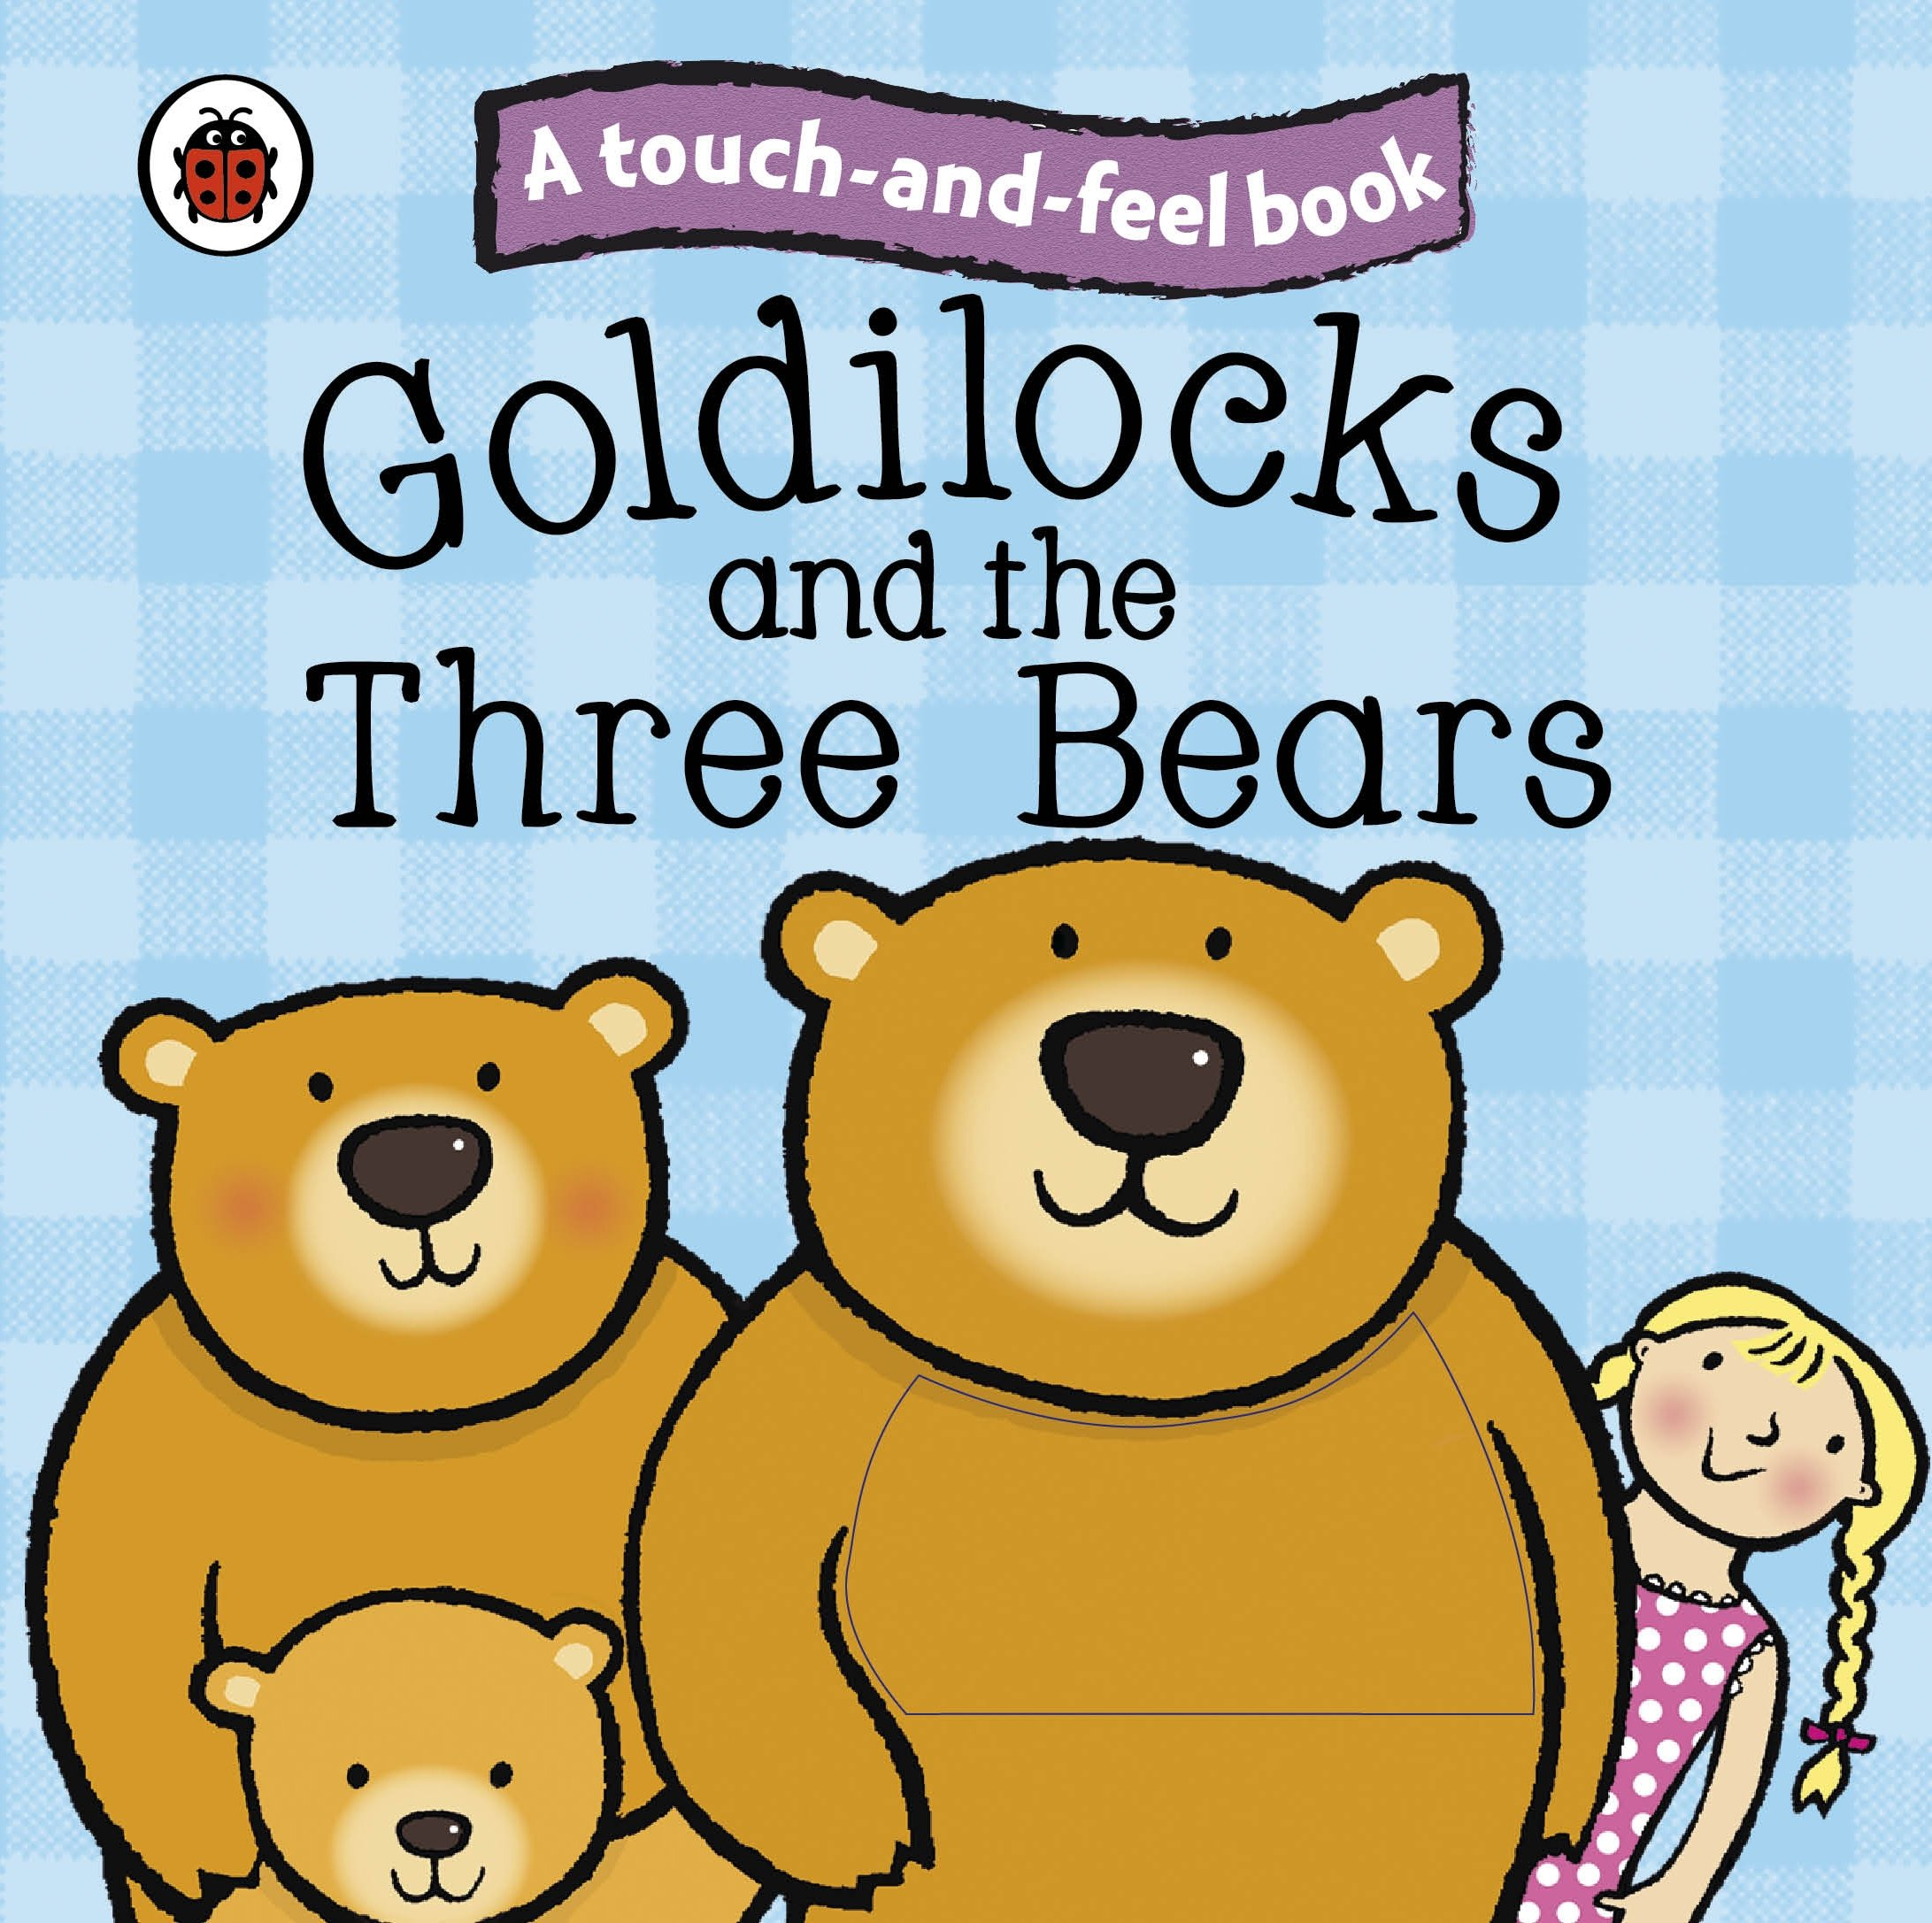 Goldilocks and the Three Bears: Ladybird Touch and Feel Fairy Tales.